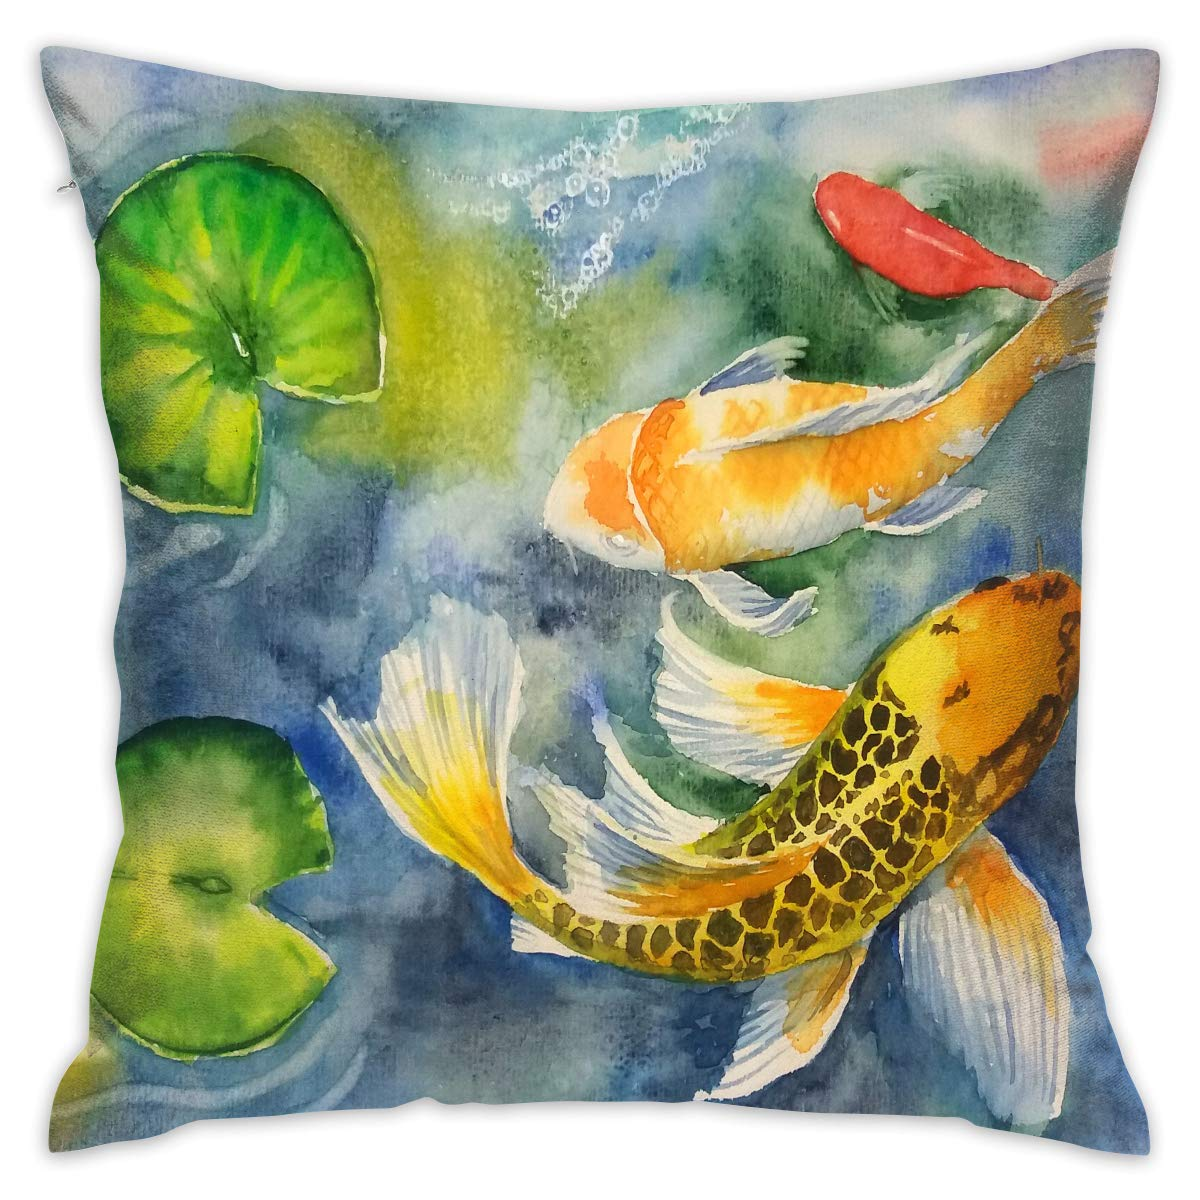 Amazon Com Japan Koi Fish Lotus Pond Decorative Throw Pillow Cover Without Inserts Cushion Case For Home Sofa Bedroom Car Chair House Party Indoor Outdoor 18 X 18 Inch 45 X 45 Cm